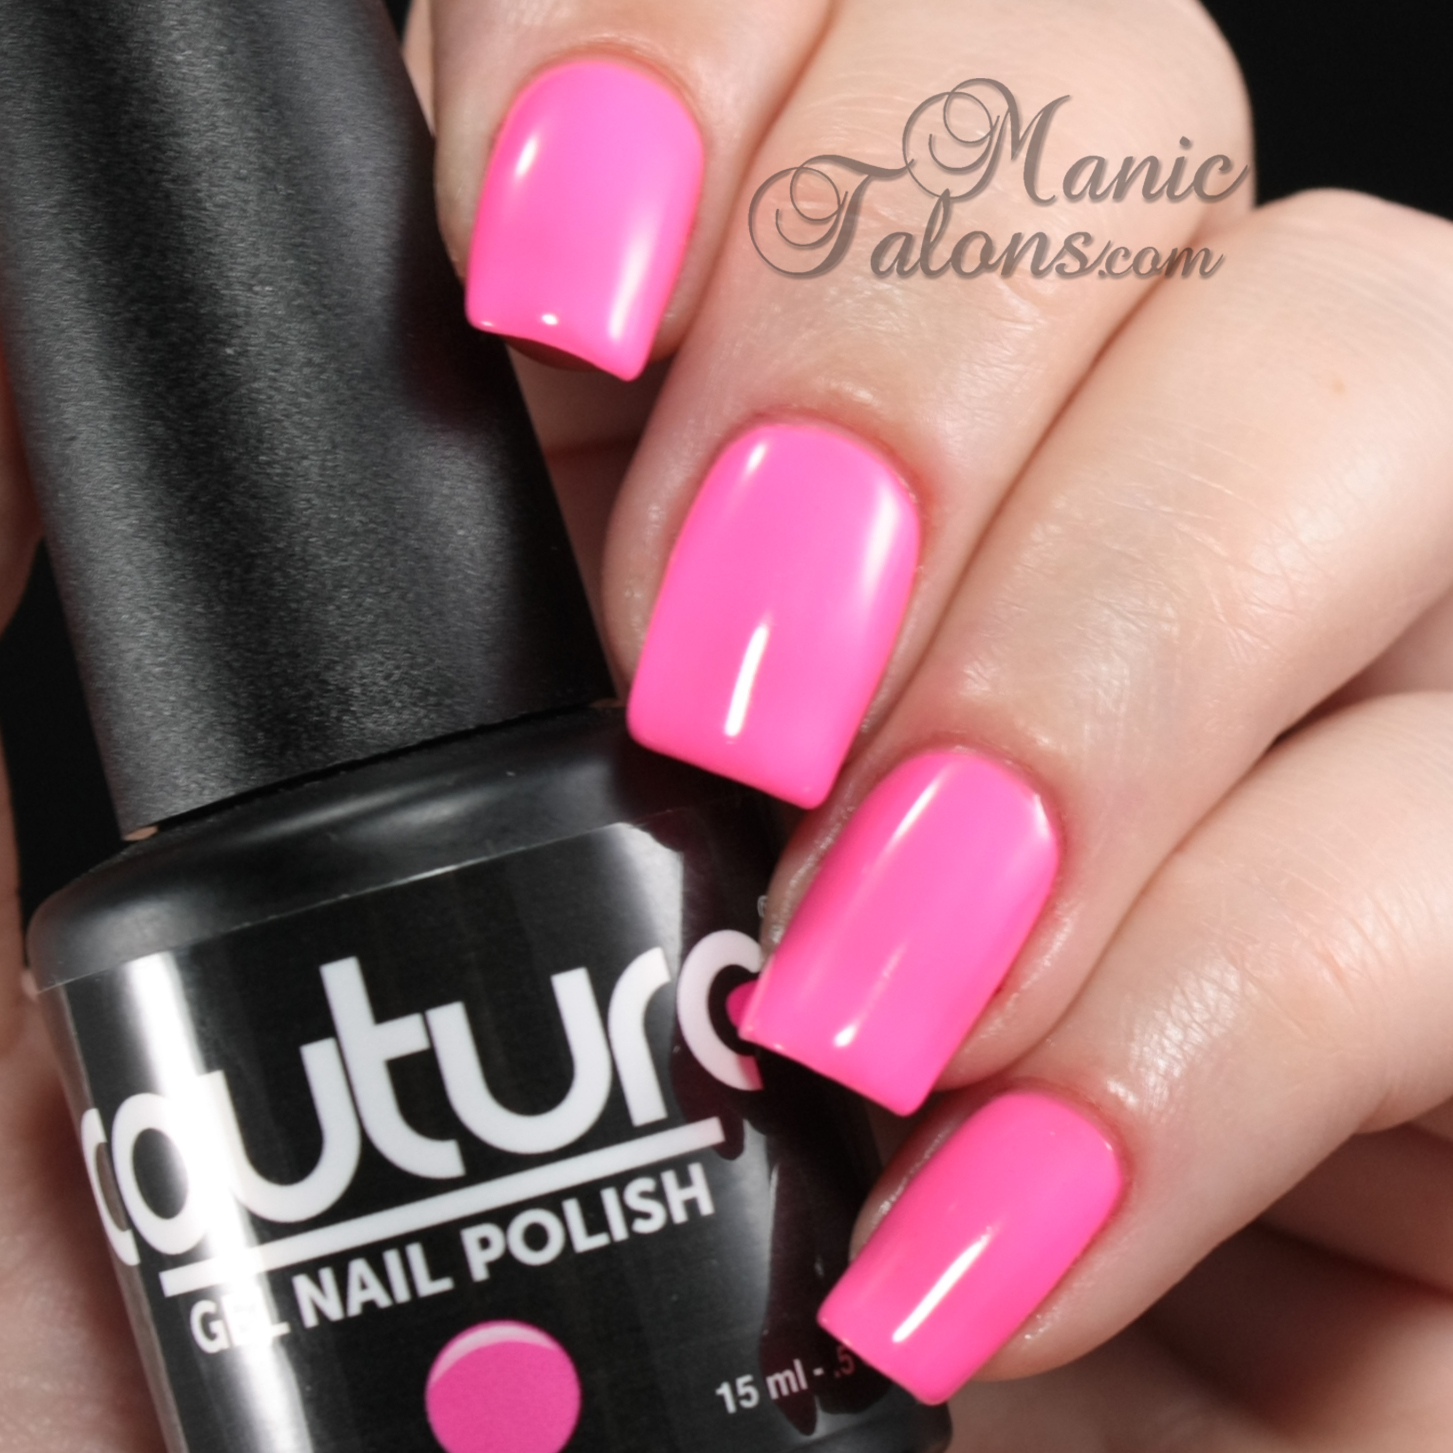 Manic Talons Nail Design: Bright and Fun colors from Couture Gel ...